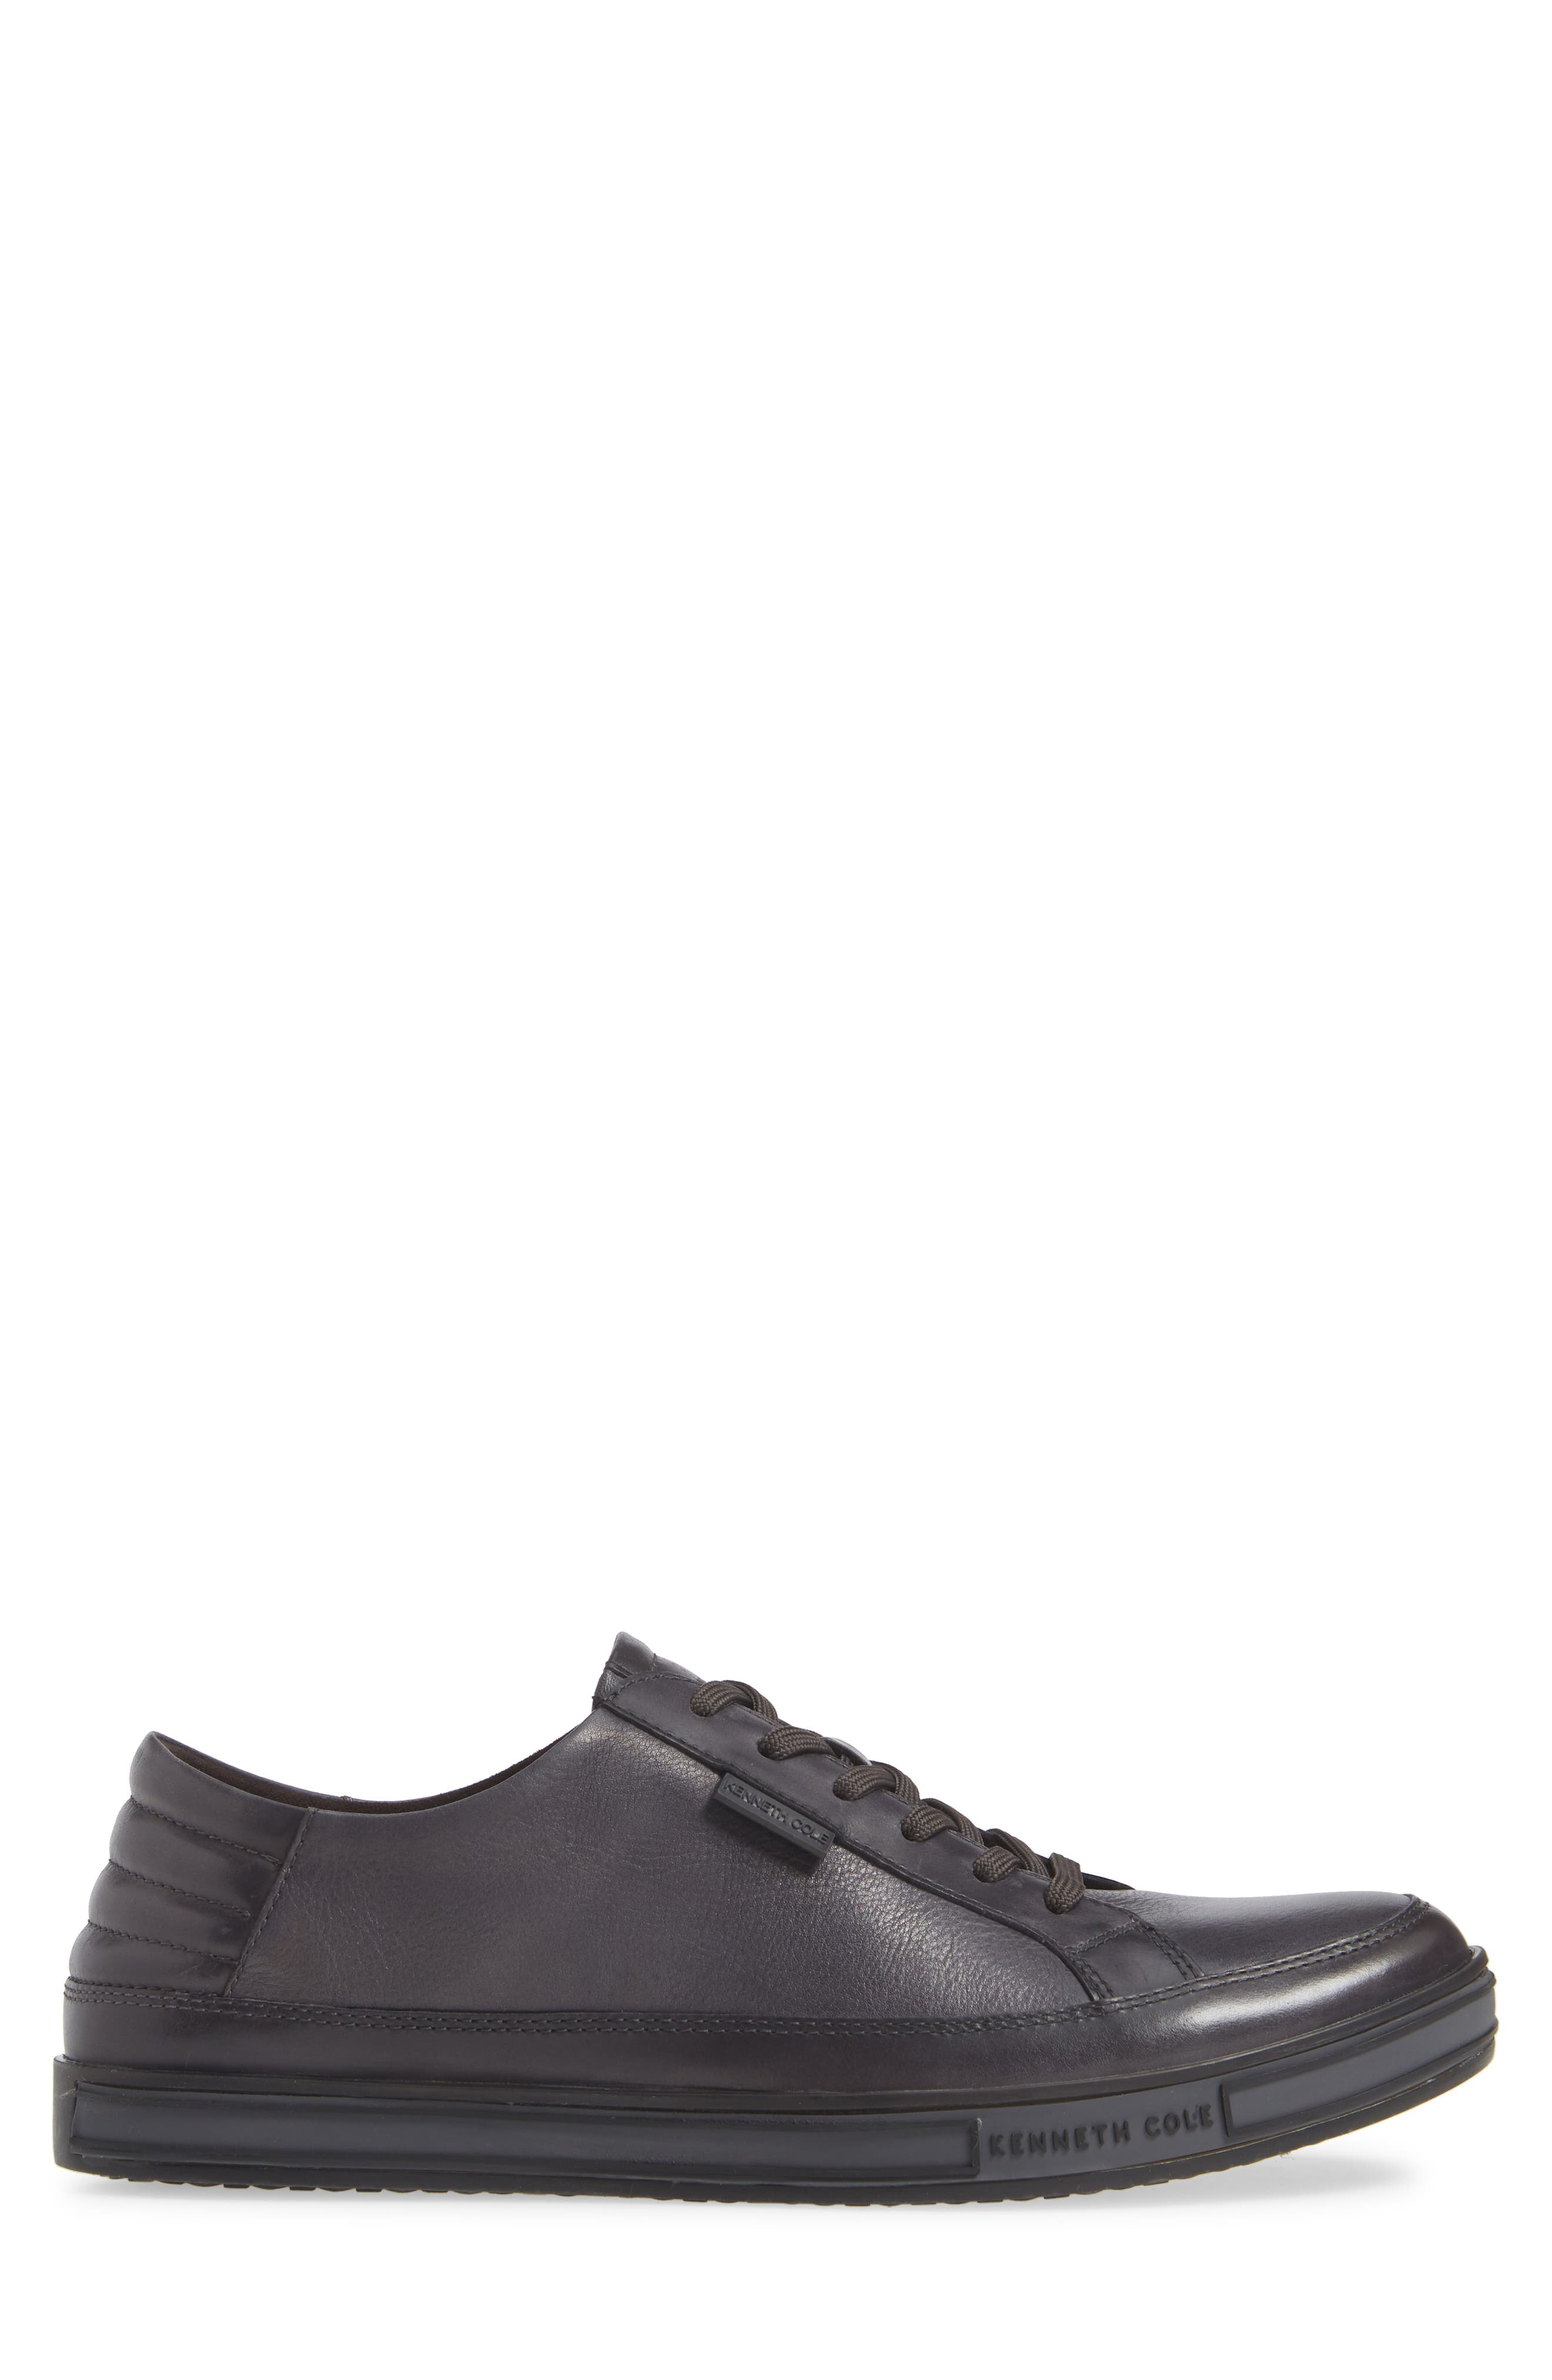 KENNETH COLE NEW YORK, Brand Stand Low Top Sneaker, Alternate thumbnail 3, color, GREY TUMBLED LEATHER/ LEATHER